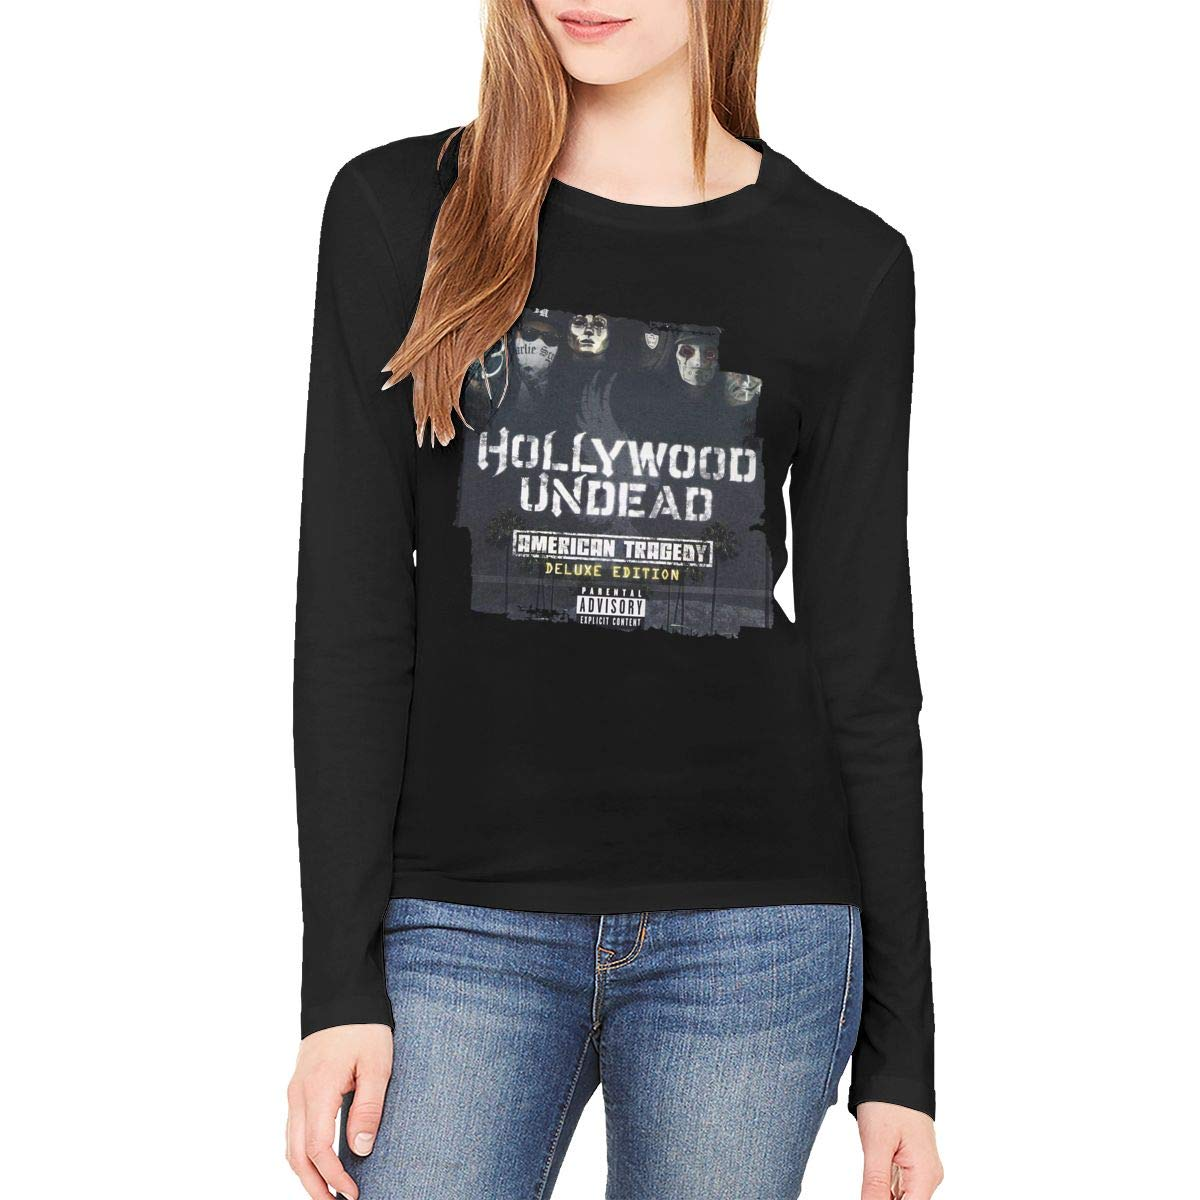 Kaceo S Hollywood Undead American Tragedy Black Shirts